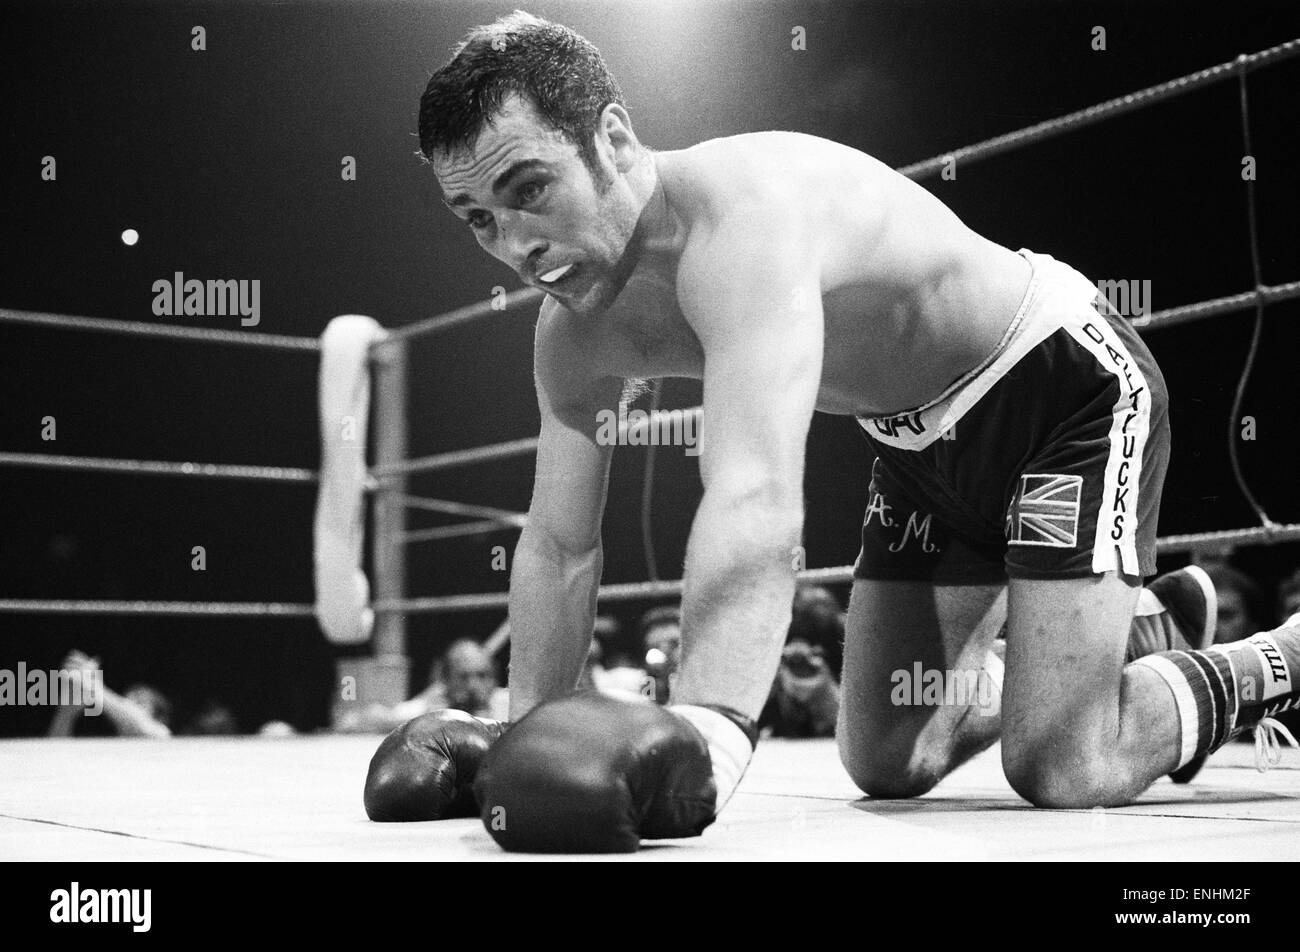 Boxer Alan Minter knocked down by Tony Sibson 1981 before losing fight. *** Local Caption *** 00130189 - Stock Image